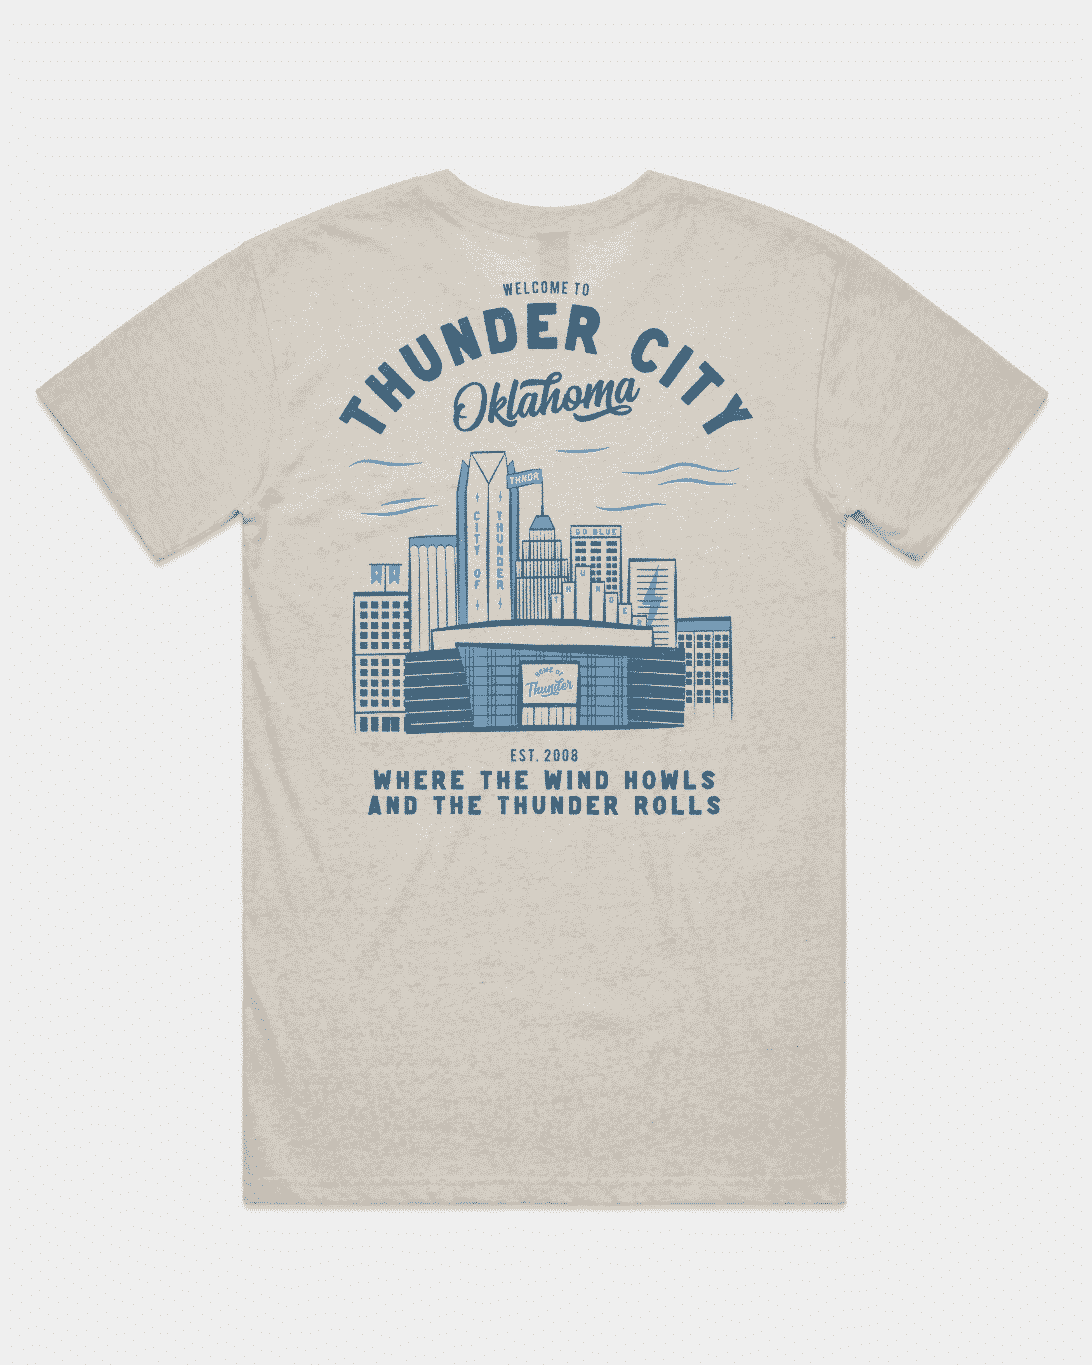 Thunder City OK Tee